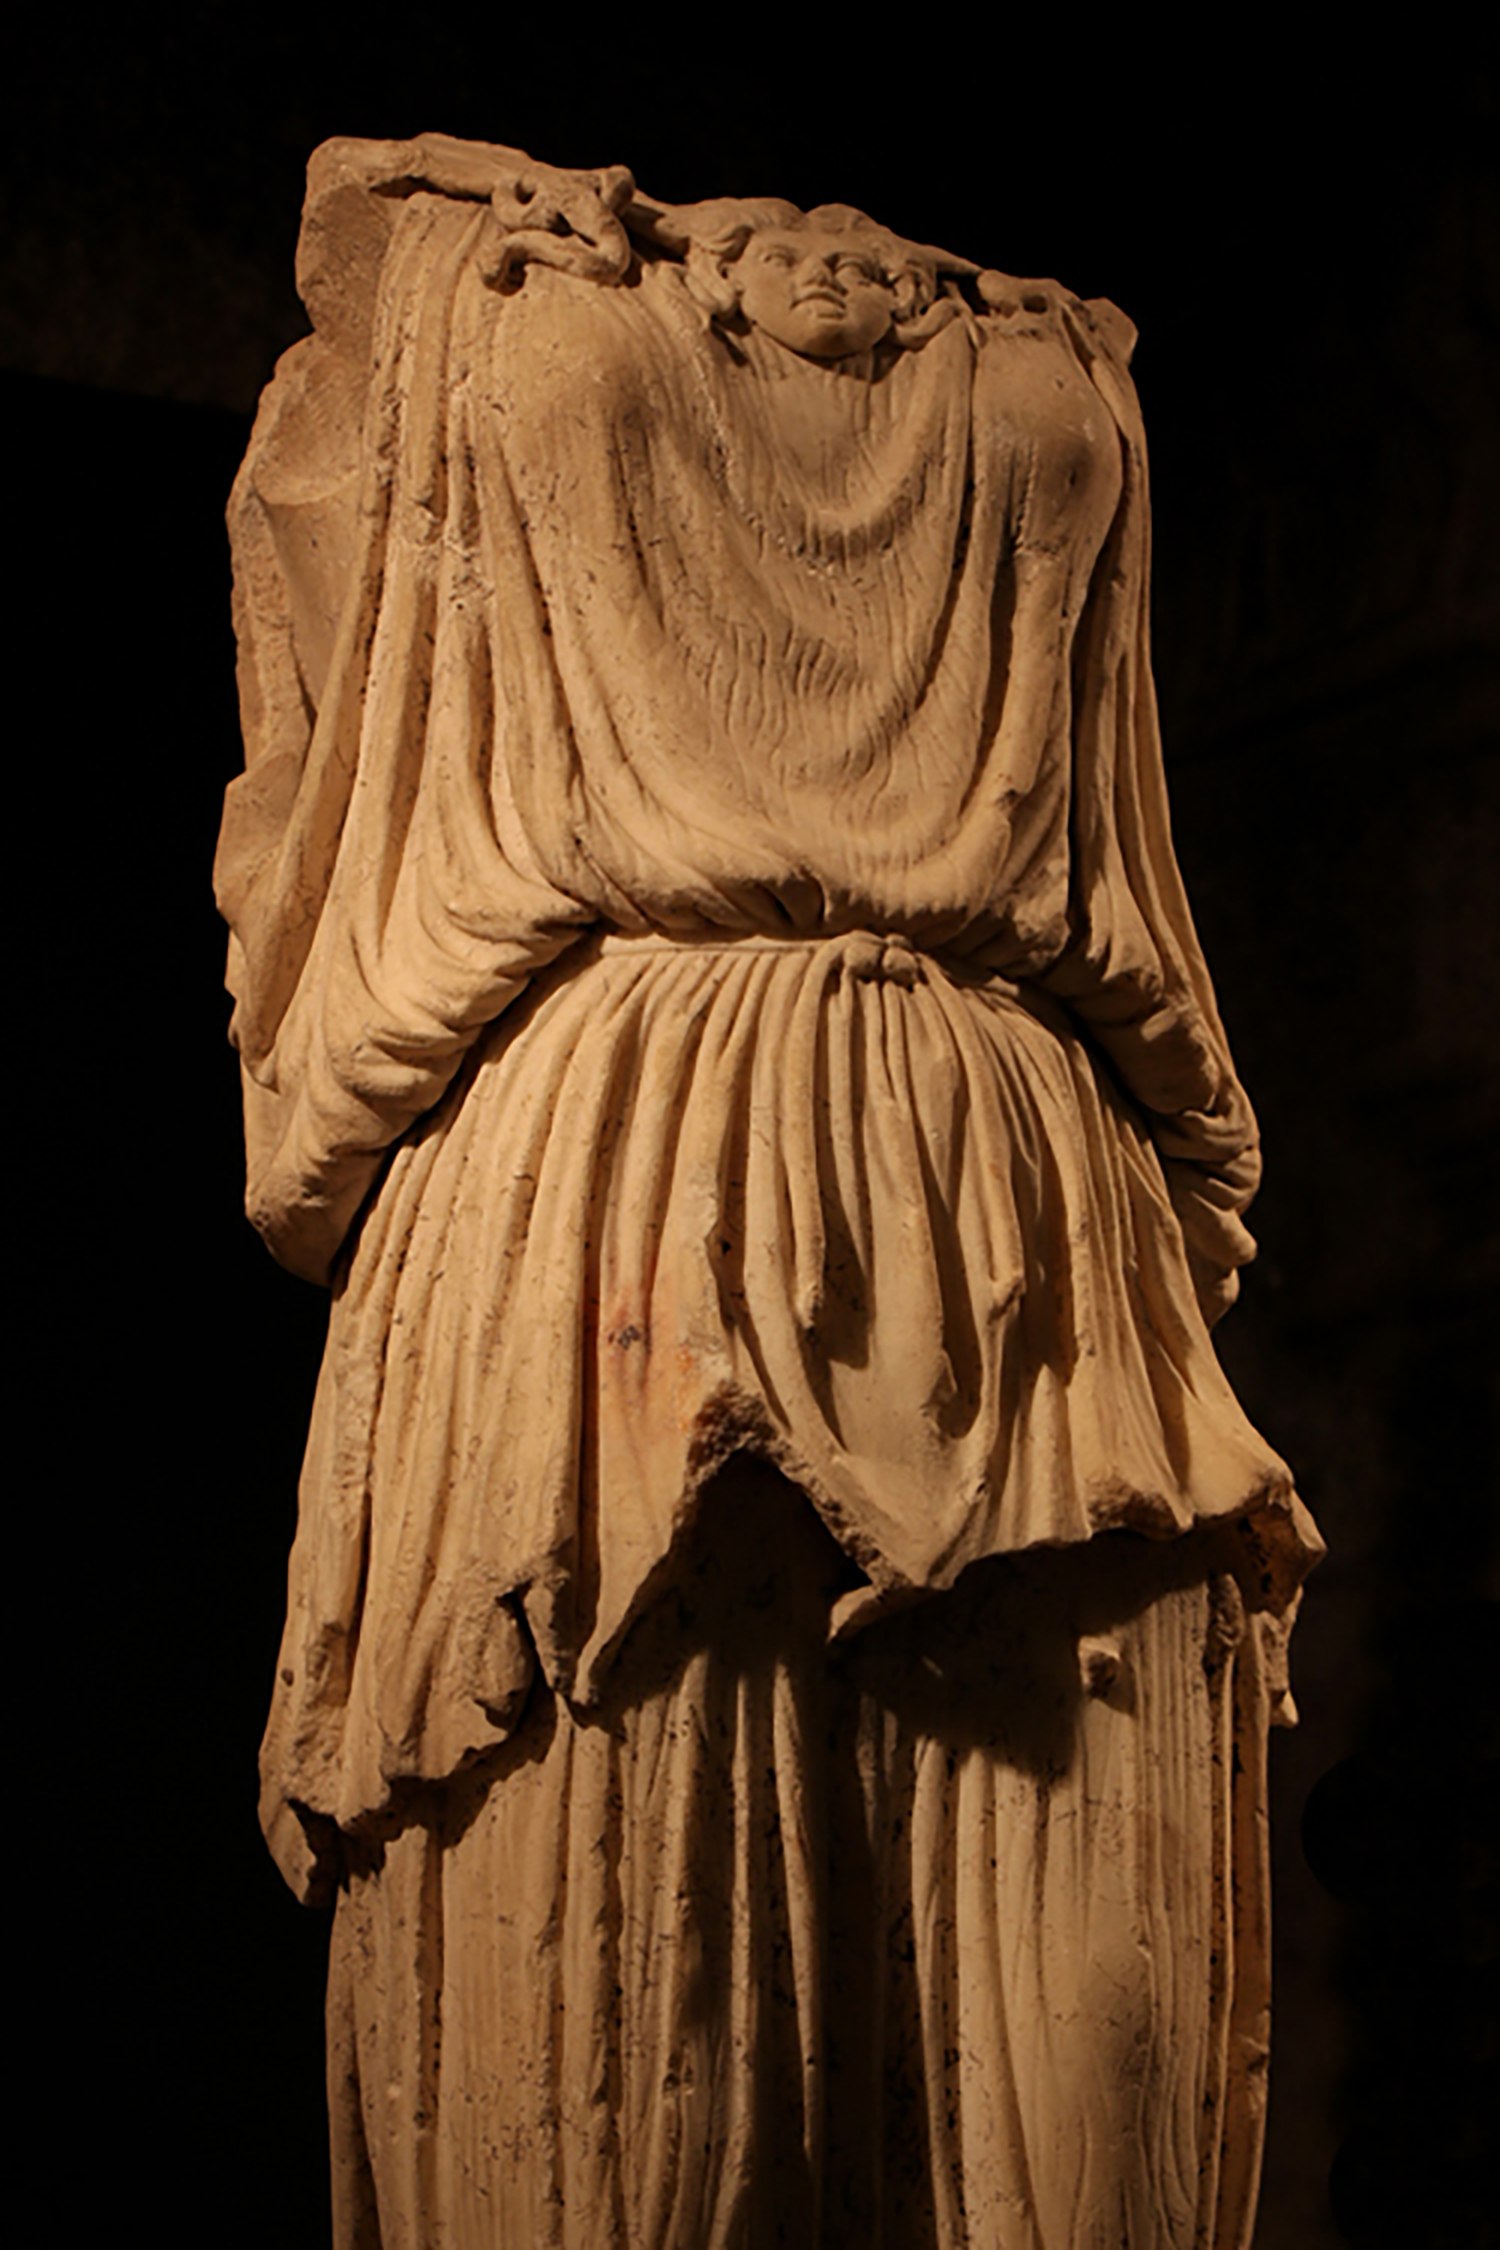 Statue of the Roman goddess Minerva-Victoria in Glencairn's Roman and Early Christian Gallery.